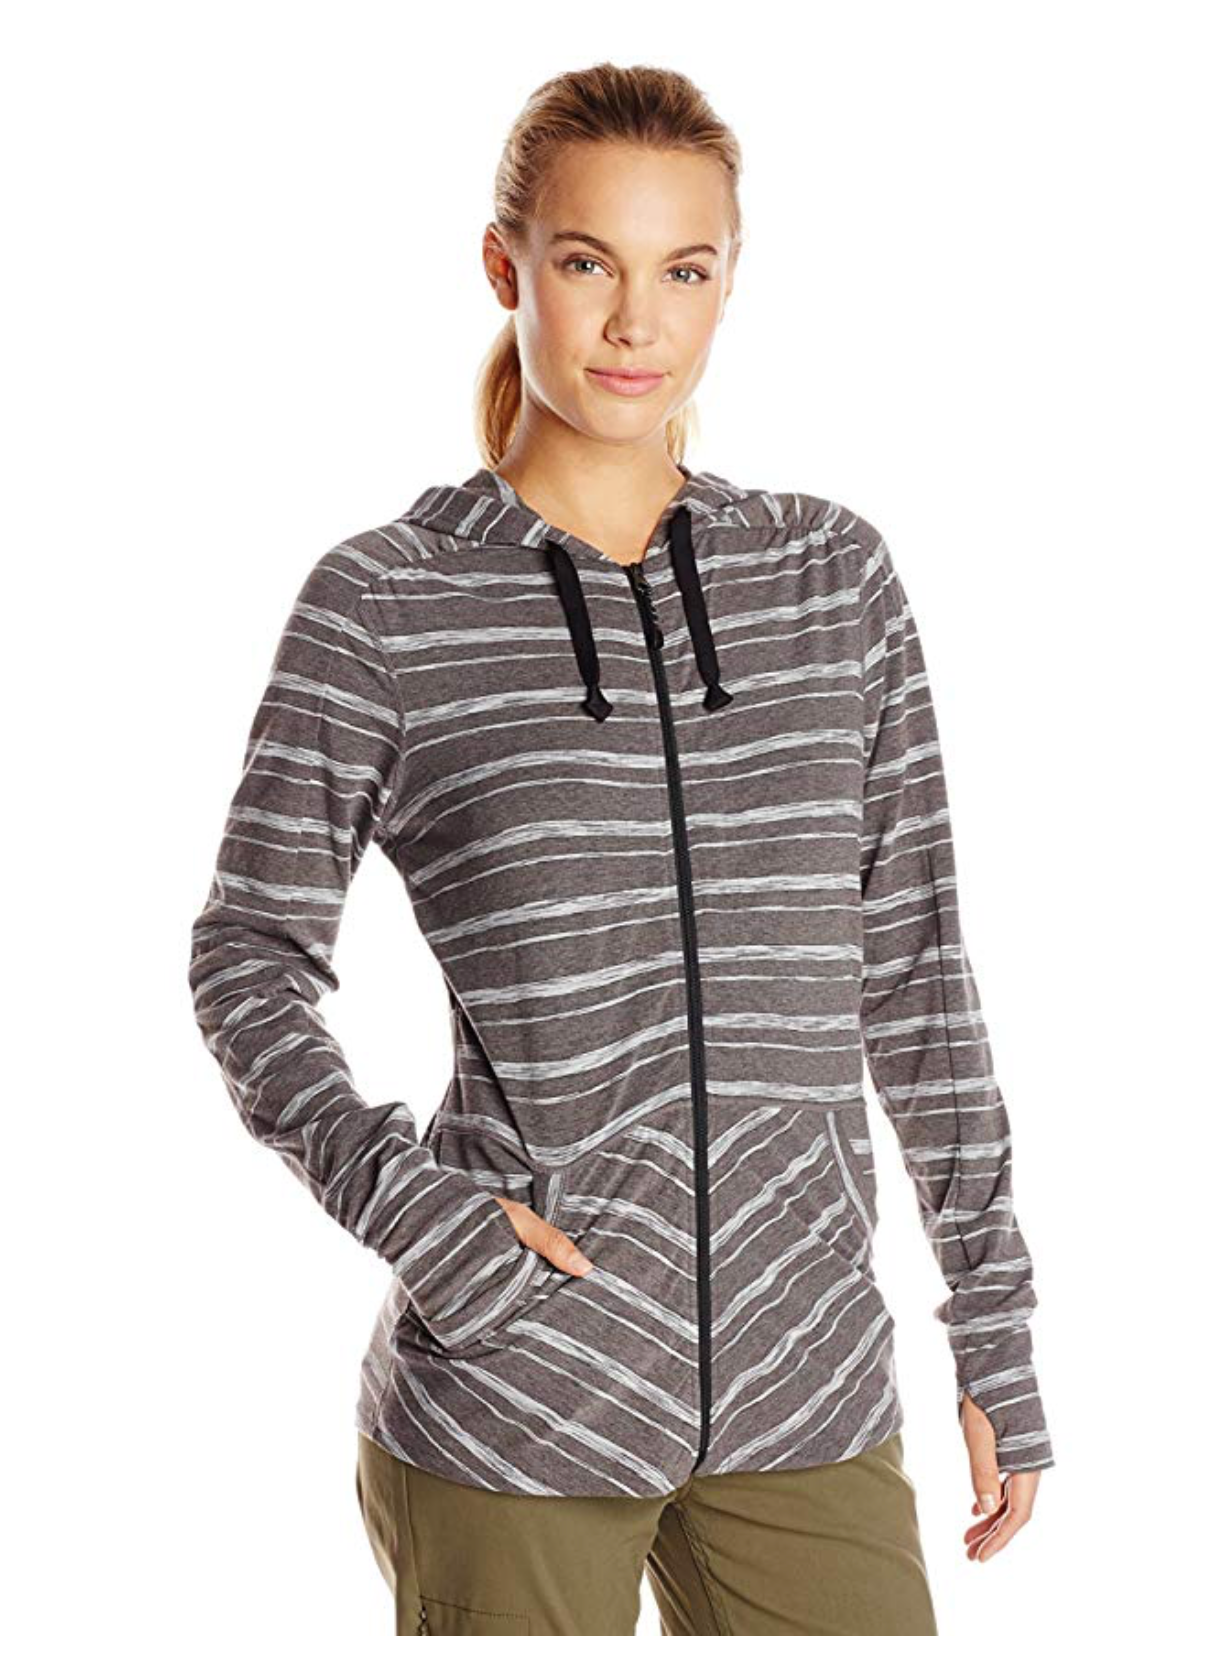 ExOfficio Women Chica Cool Stripe Hoody LARGE Color Cement - BrandsForLess.CO